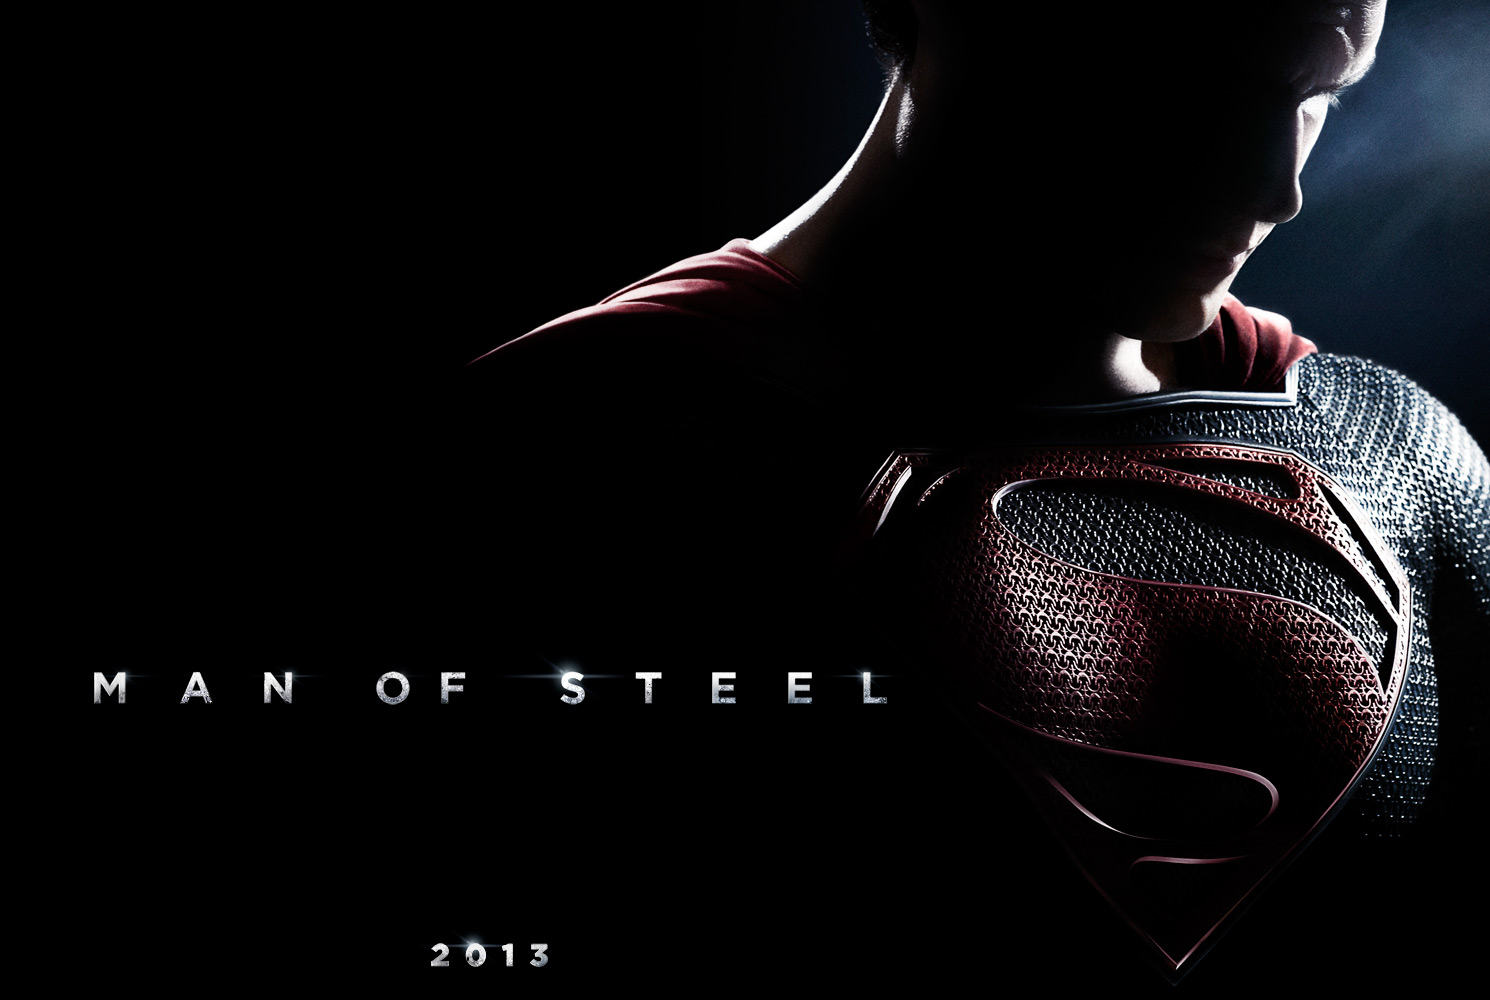 Man of Steel - Trailer  2  c Traducci  243 n  - ACTUALIZACI  211 N  Versi  243 n    Man Of Steel